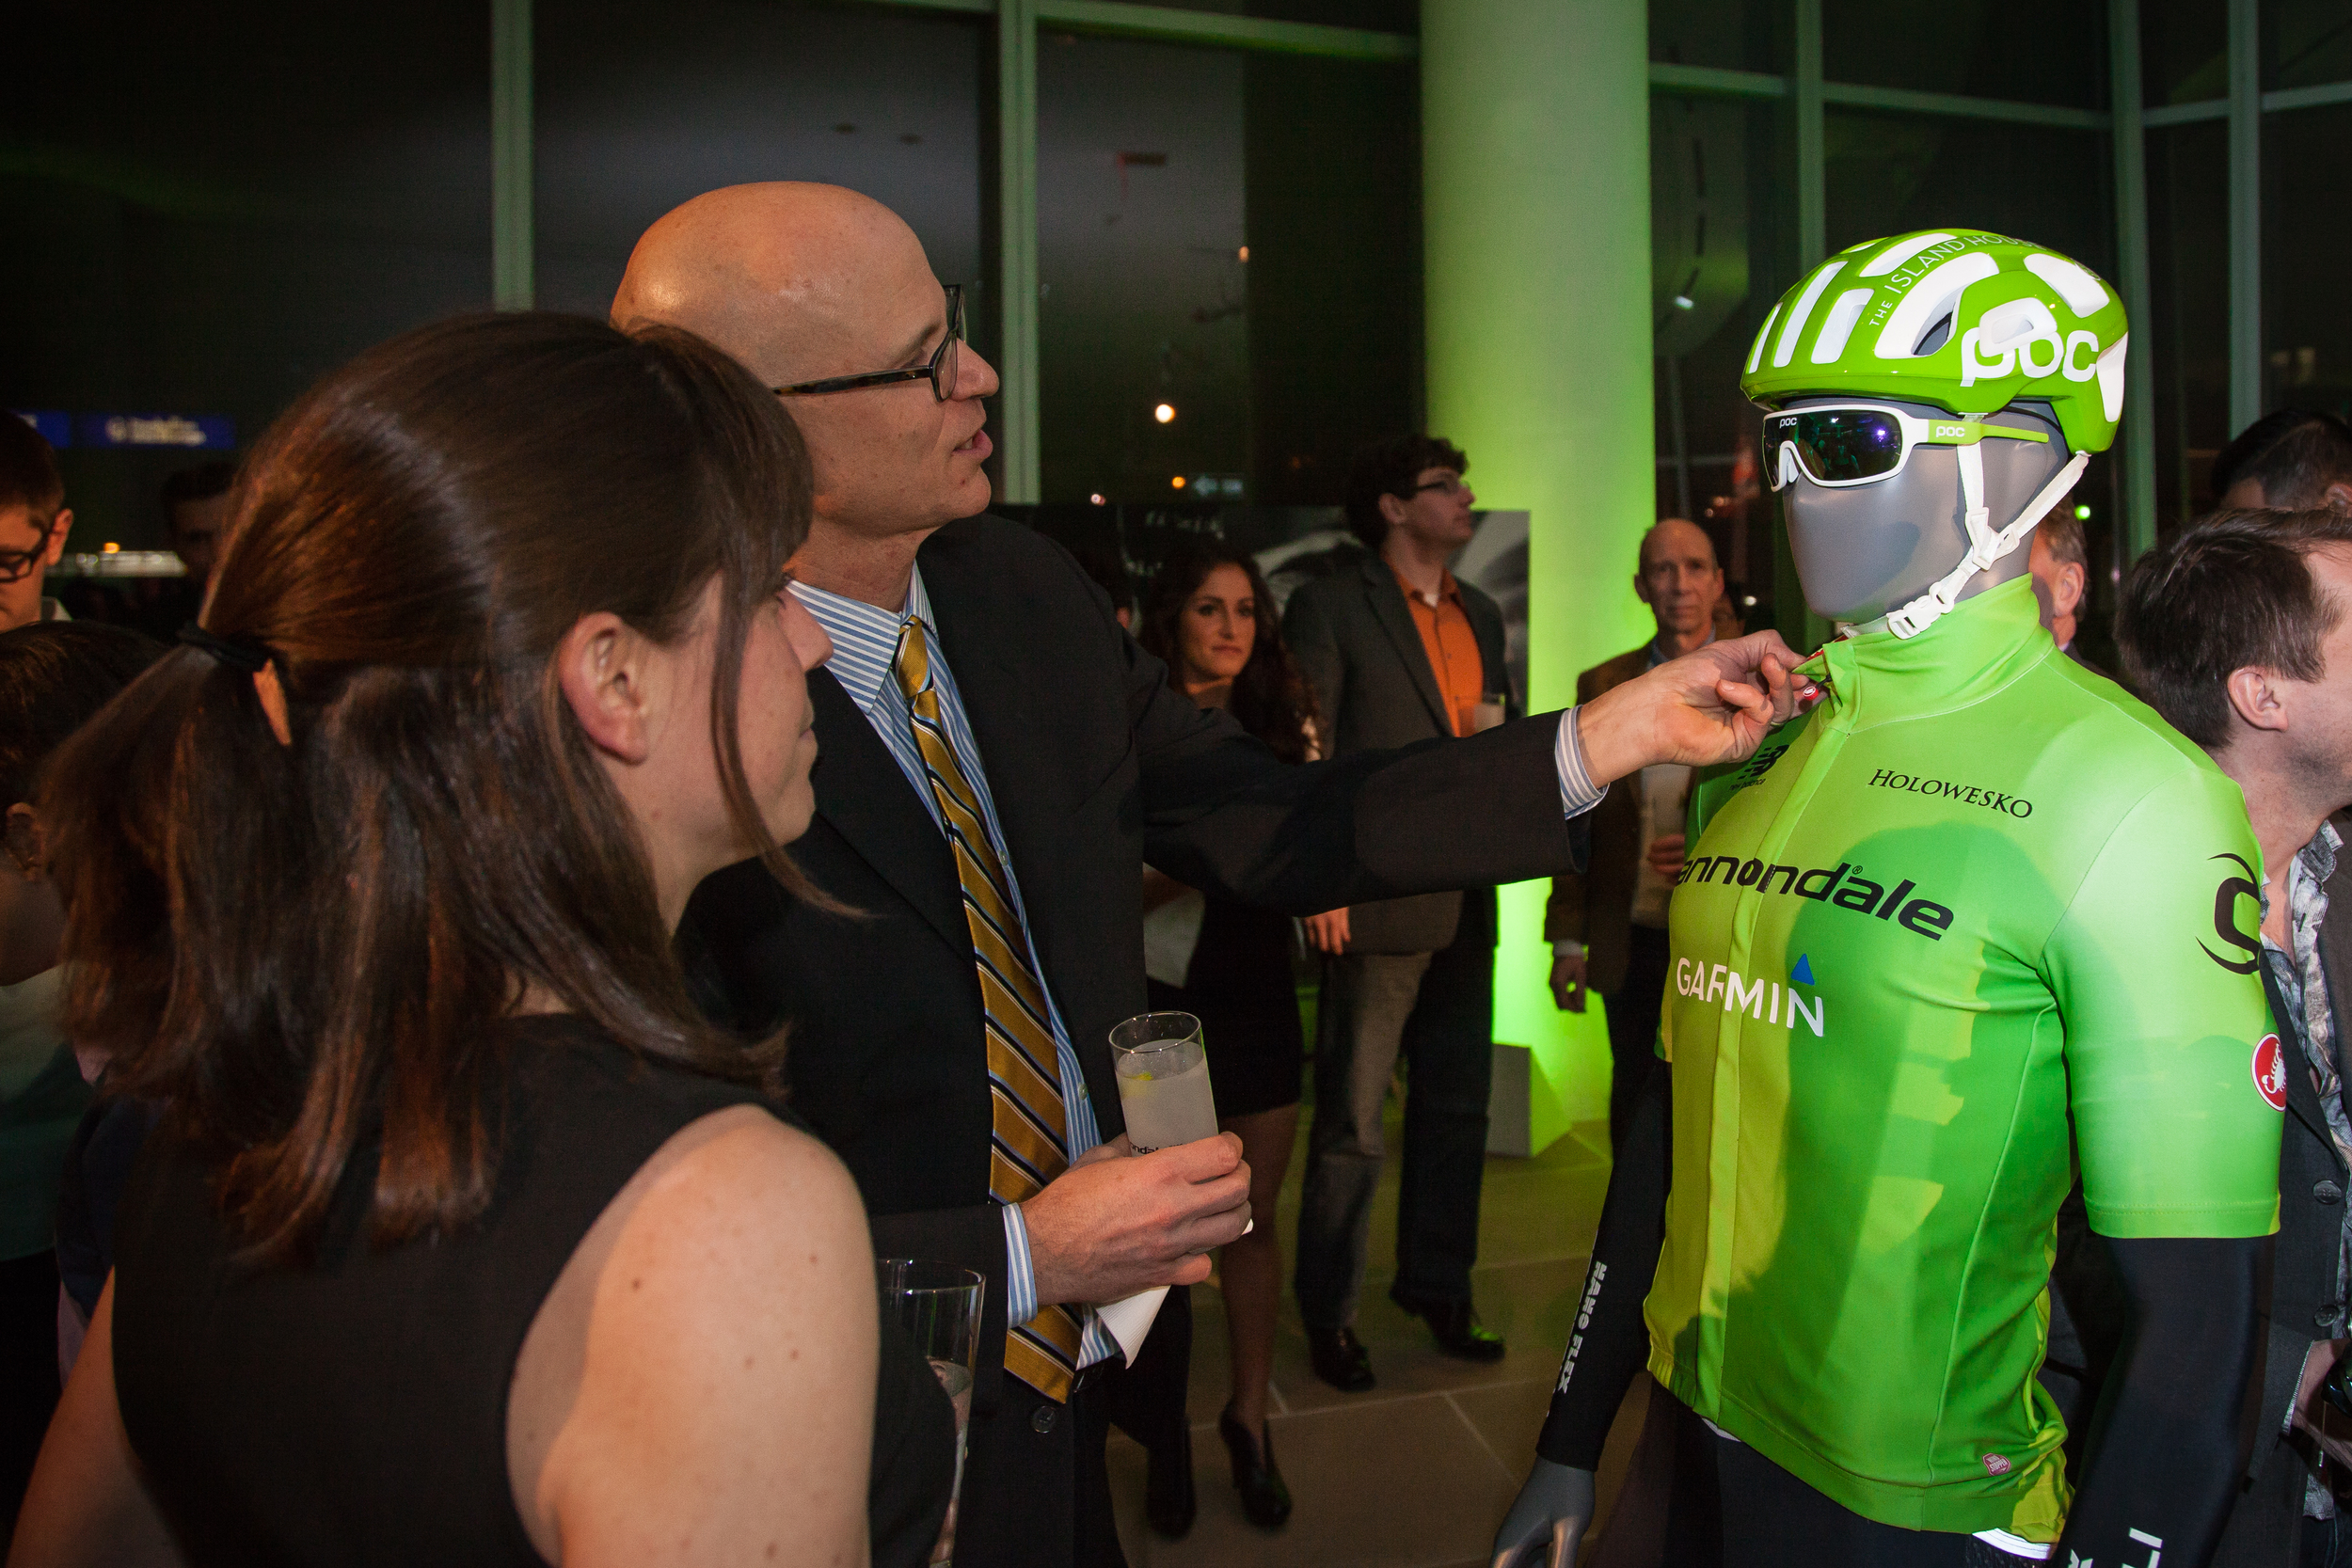 A guest inspects the new green kit for the Cannondale-Garmin Pro Cylcing team at the NYC launch event.